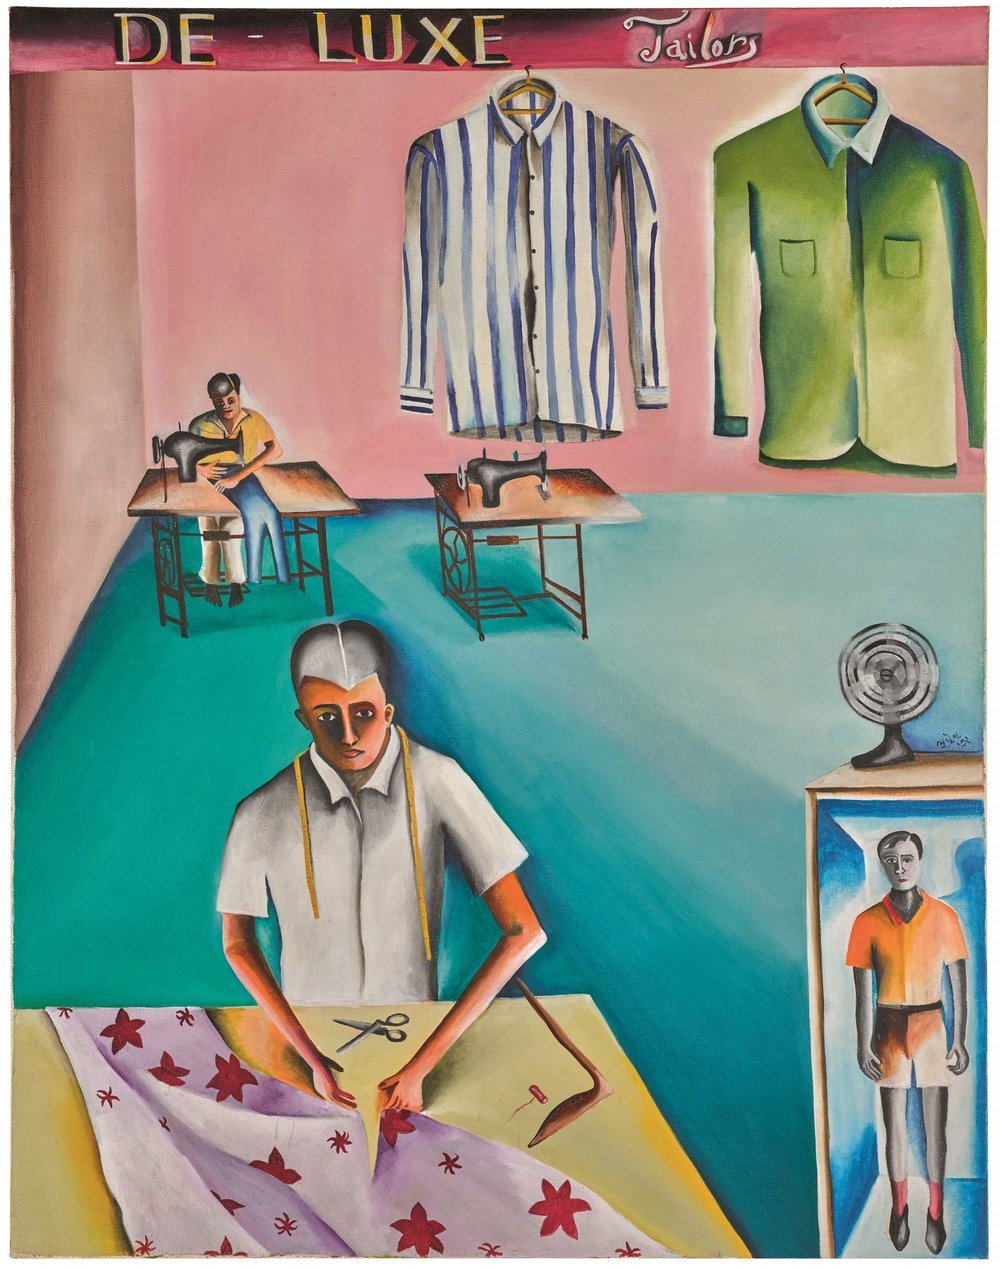 Bhupen Khakhar. De-Luxe Tailors, 1972. Courtesy of Sotheby's and Howard Hodgkin estate.